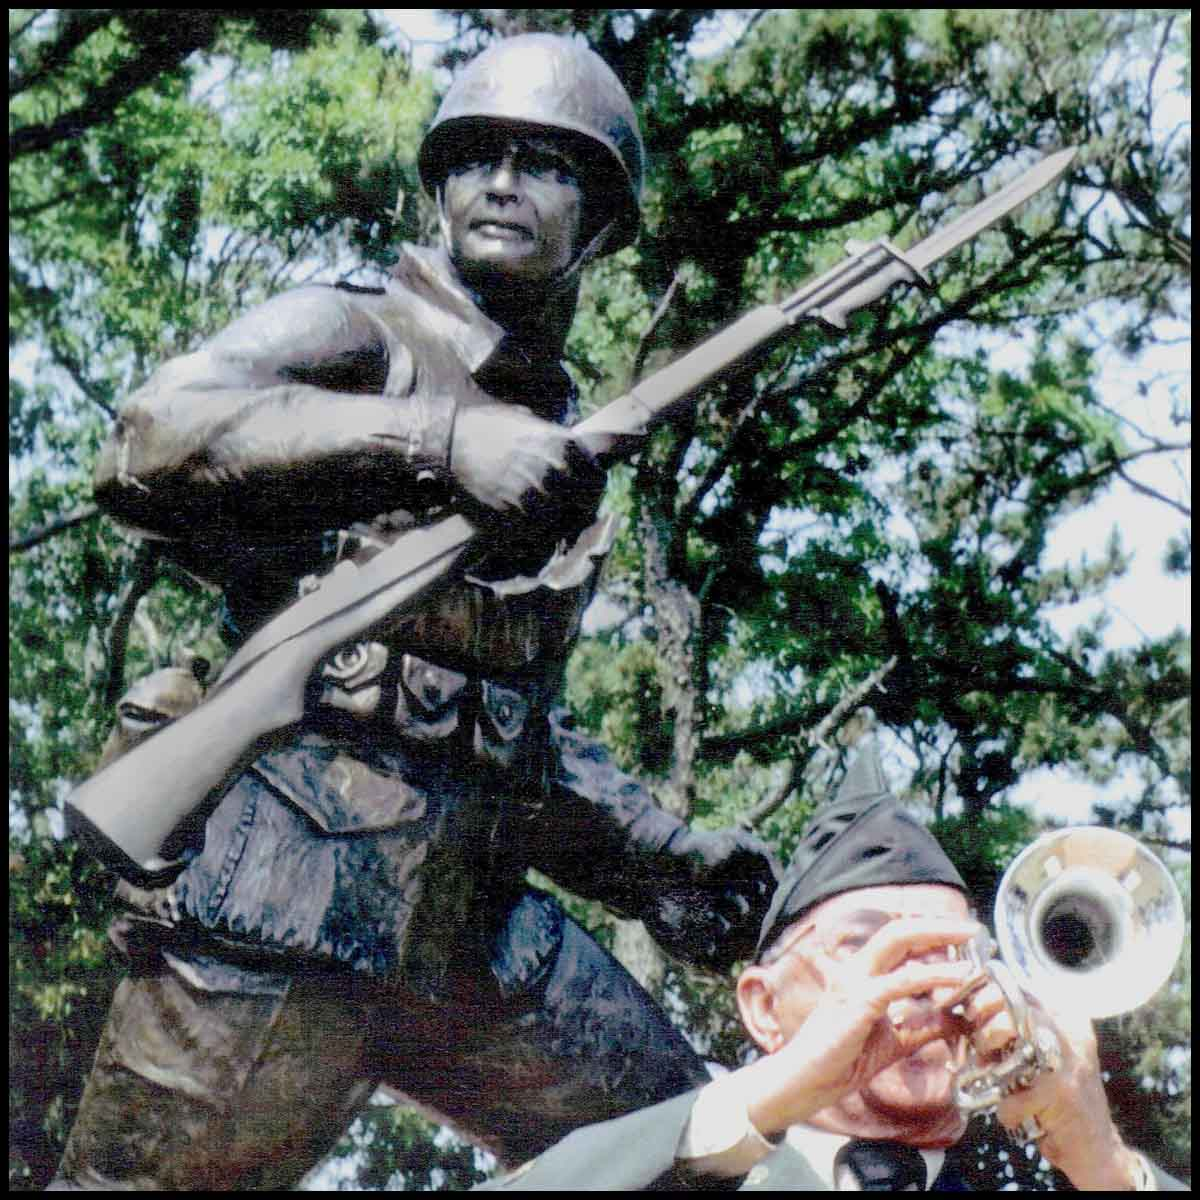 closeup photo of bronze-colored sculpture of soldier holding rifle in action on incline with trees behind and veteran in dress uniform in front playing trumpet